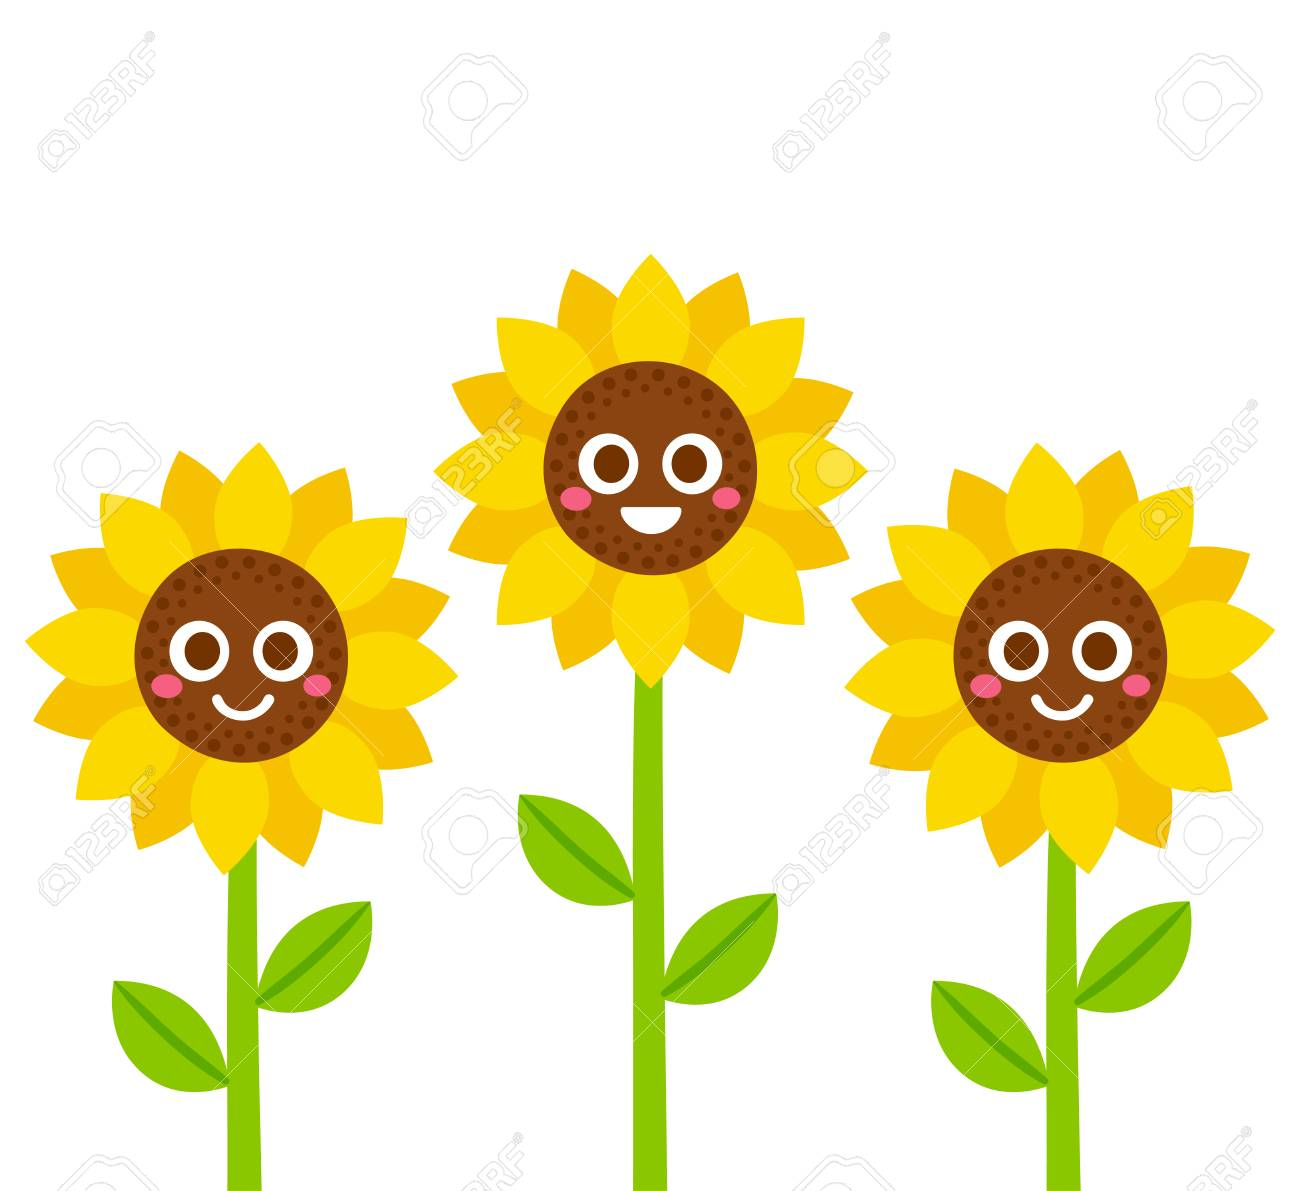 Cute Cartoon Smiling Sunflowers Vector Illustration Flowers With Smiley Faces Stock